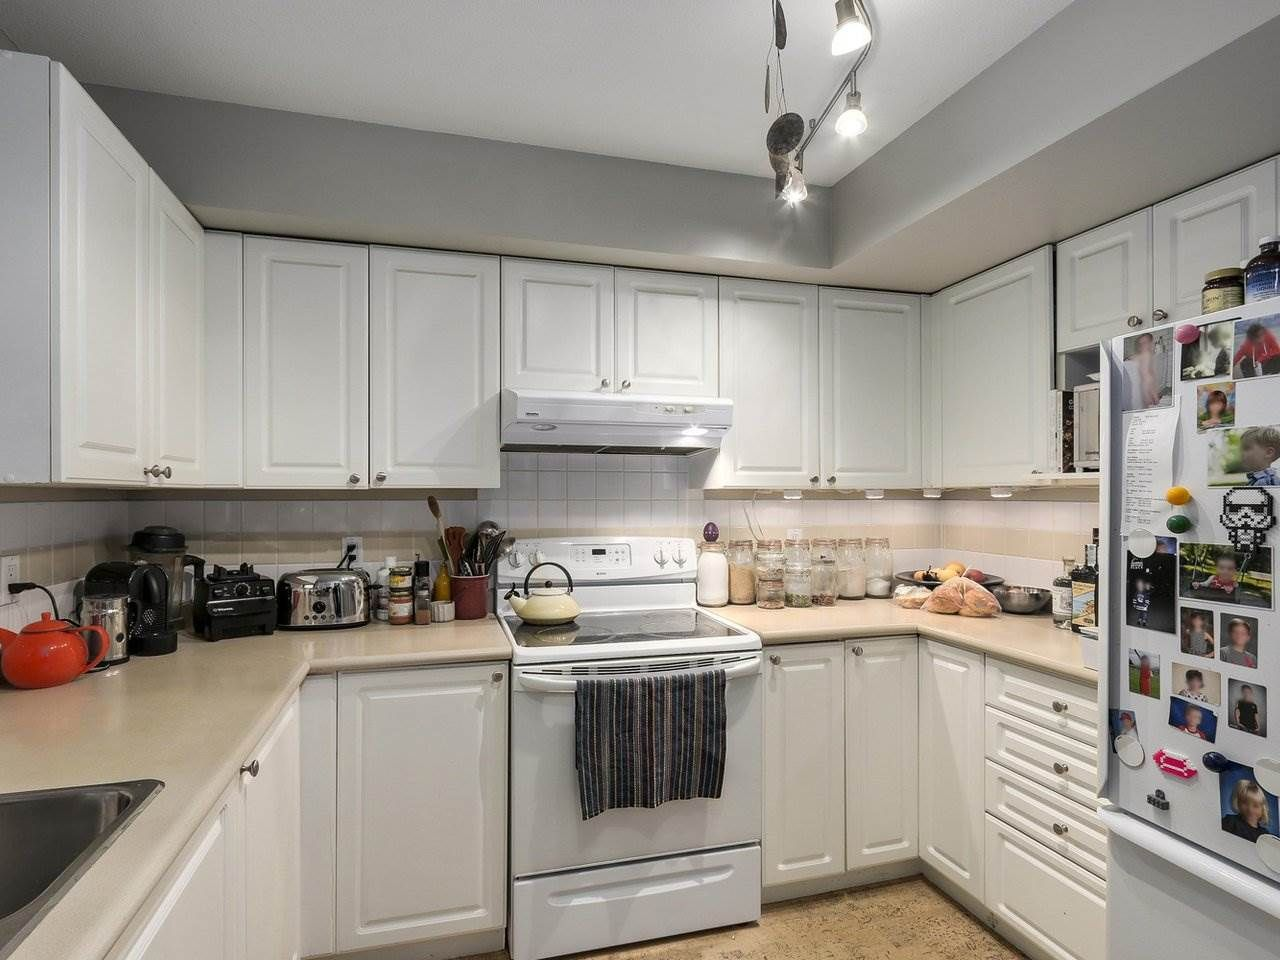 Photo 4: Photos: 305 225 E 19TH AVENUE in Vancouver: Main Condo for sale (Vancouver East)  : MLS®# R2173702